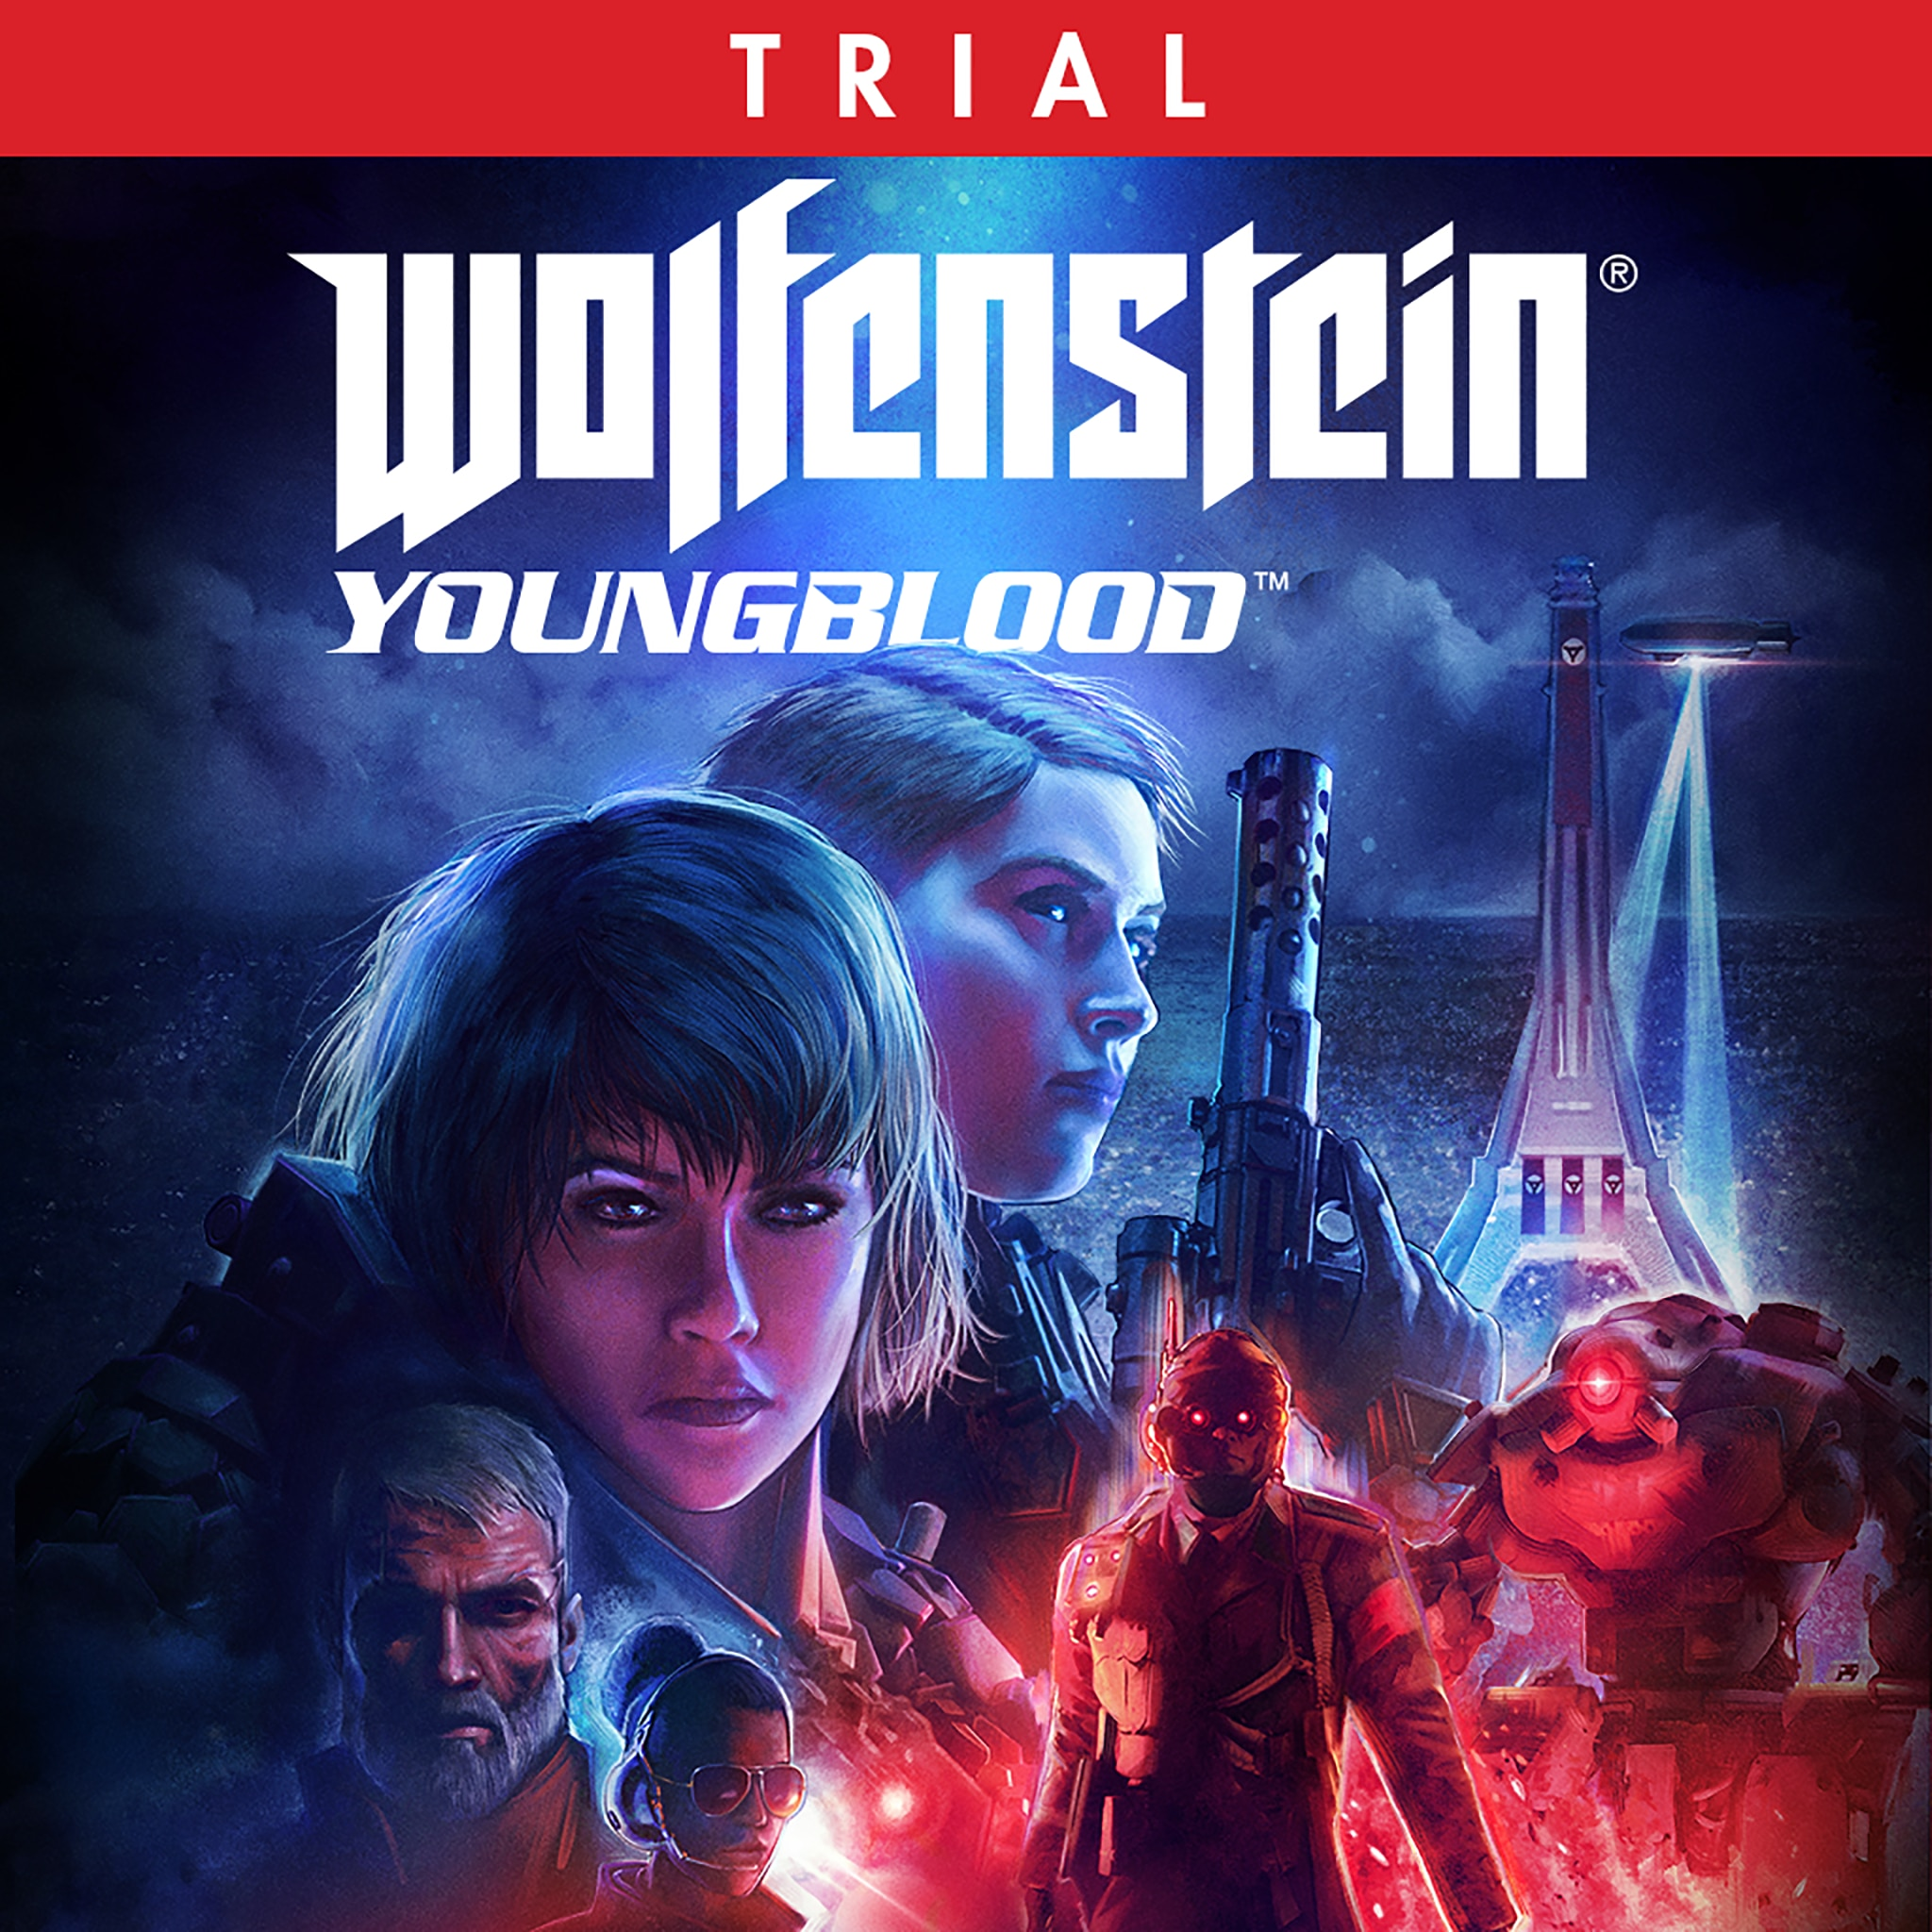 Wolfenstein: Youngblood - Trial (Deutsche Sprachversion)